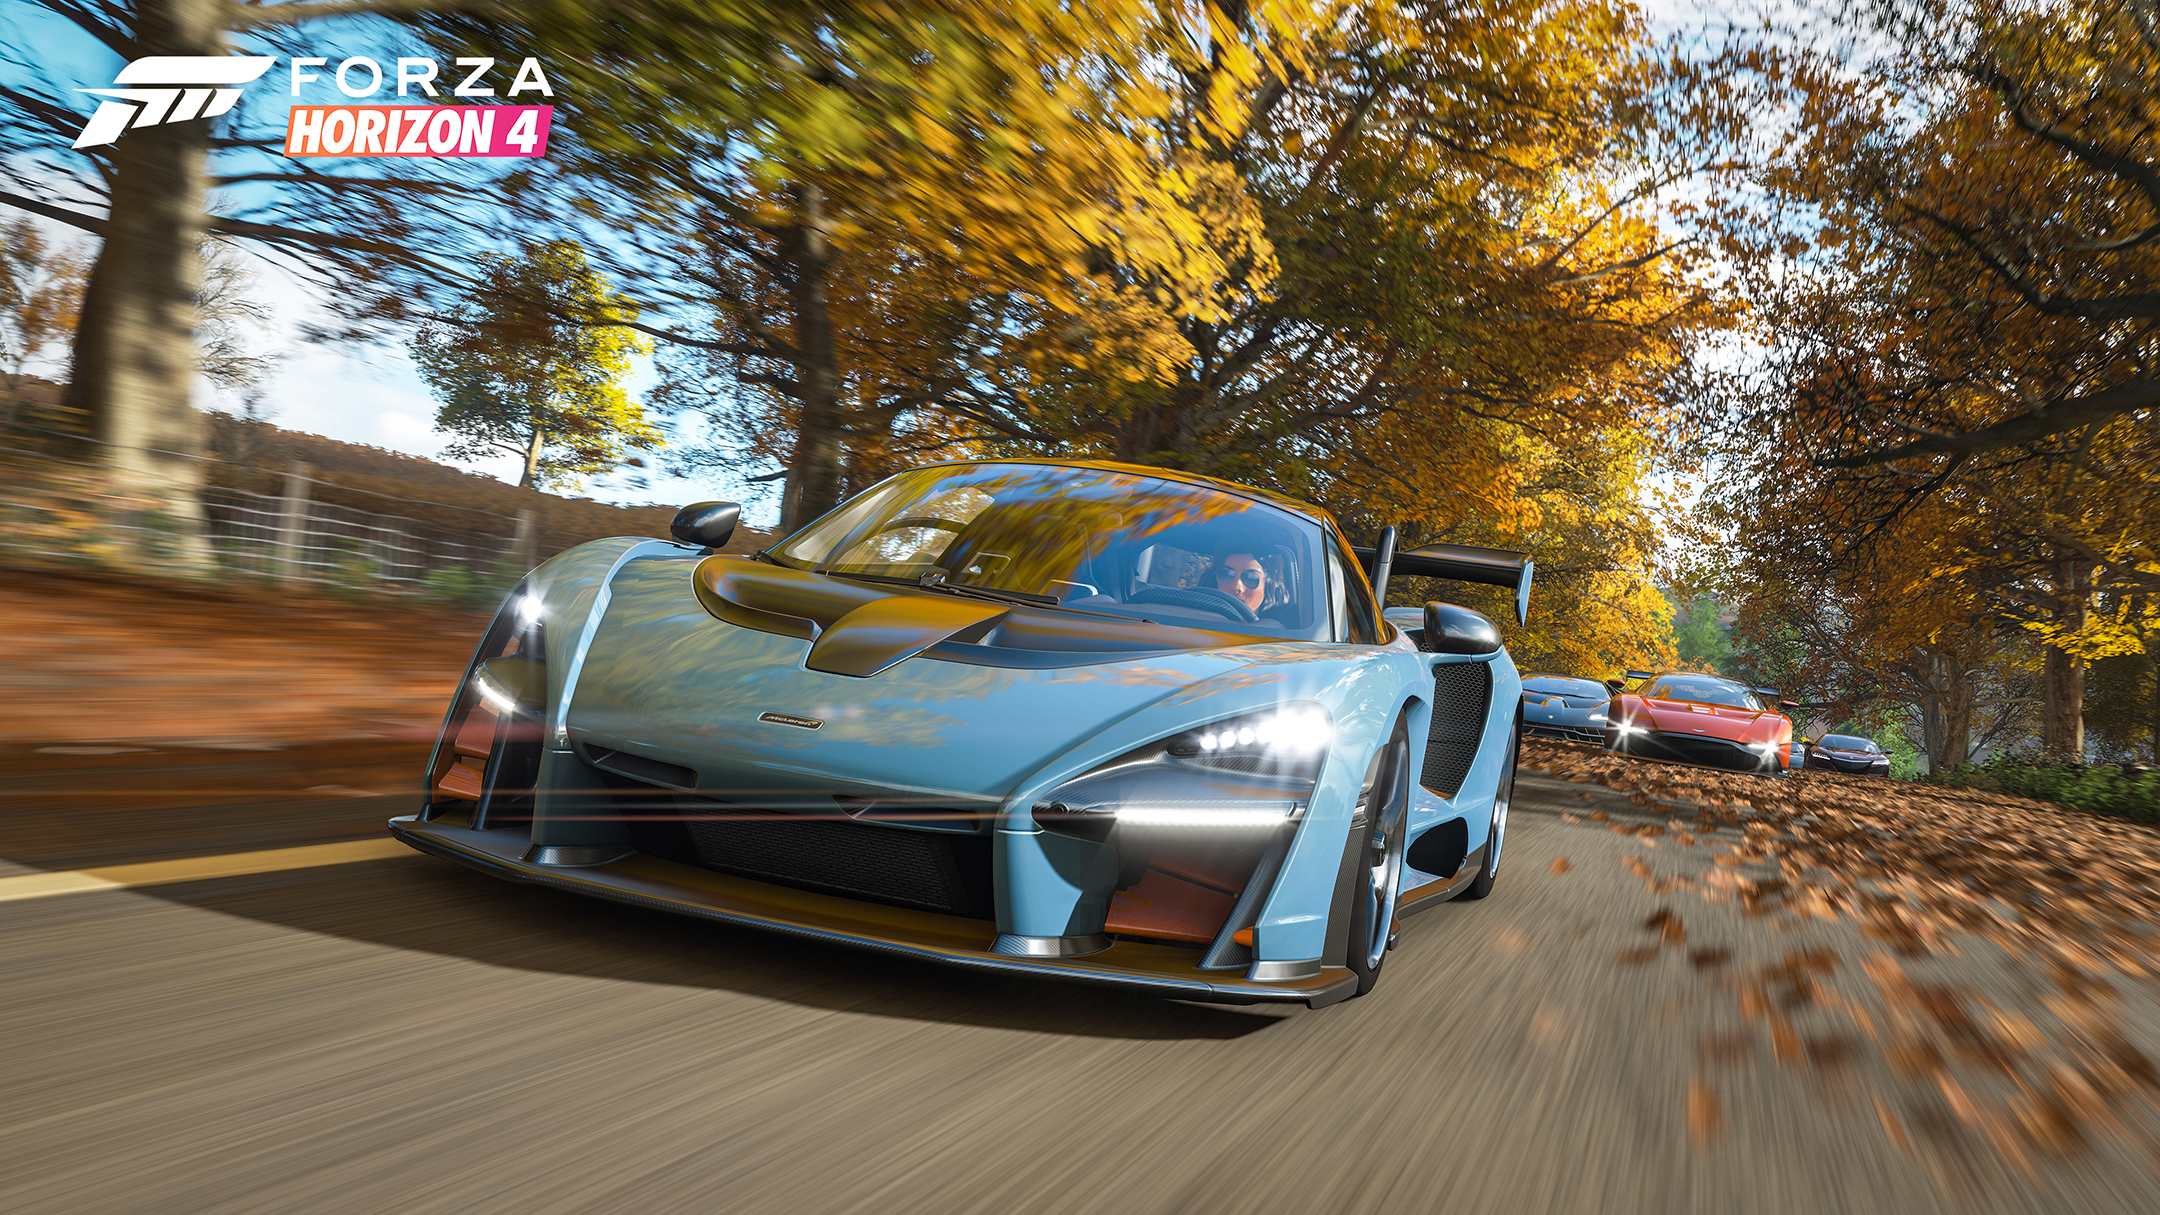 Forza Horizon 4 - 2018 - screen cars - McLaren Senna - autumn